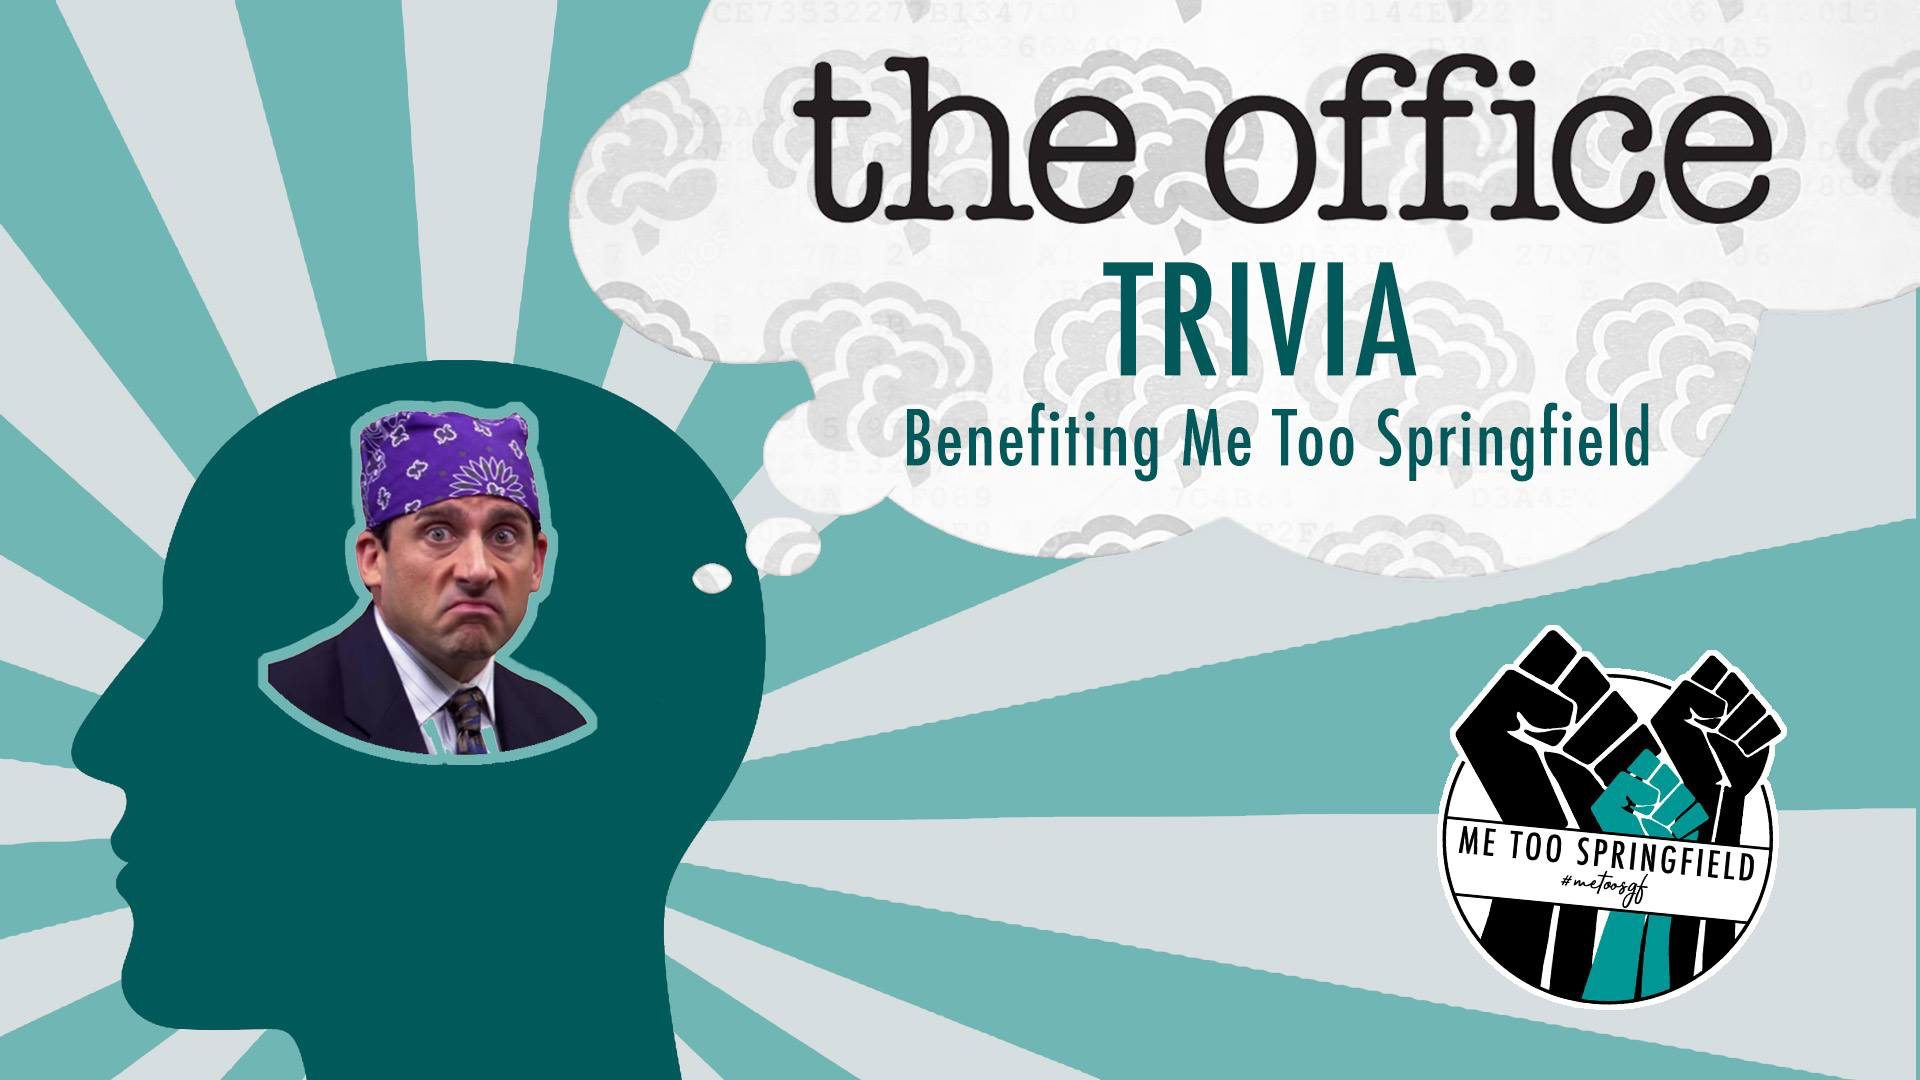 The Office Trivia in Springfield, MO